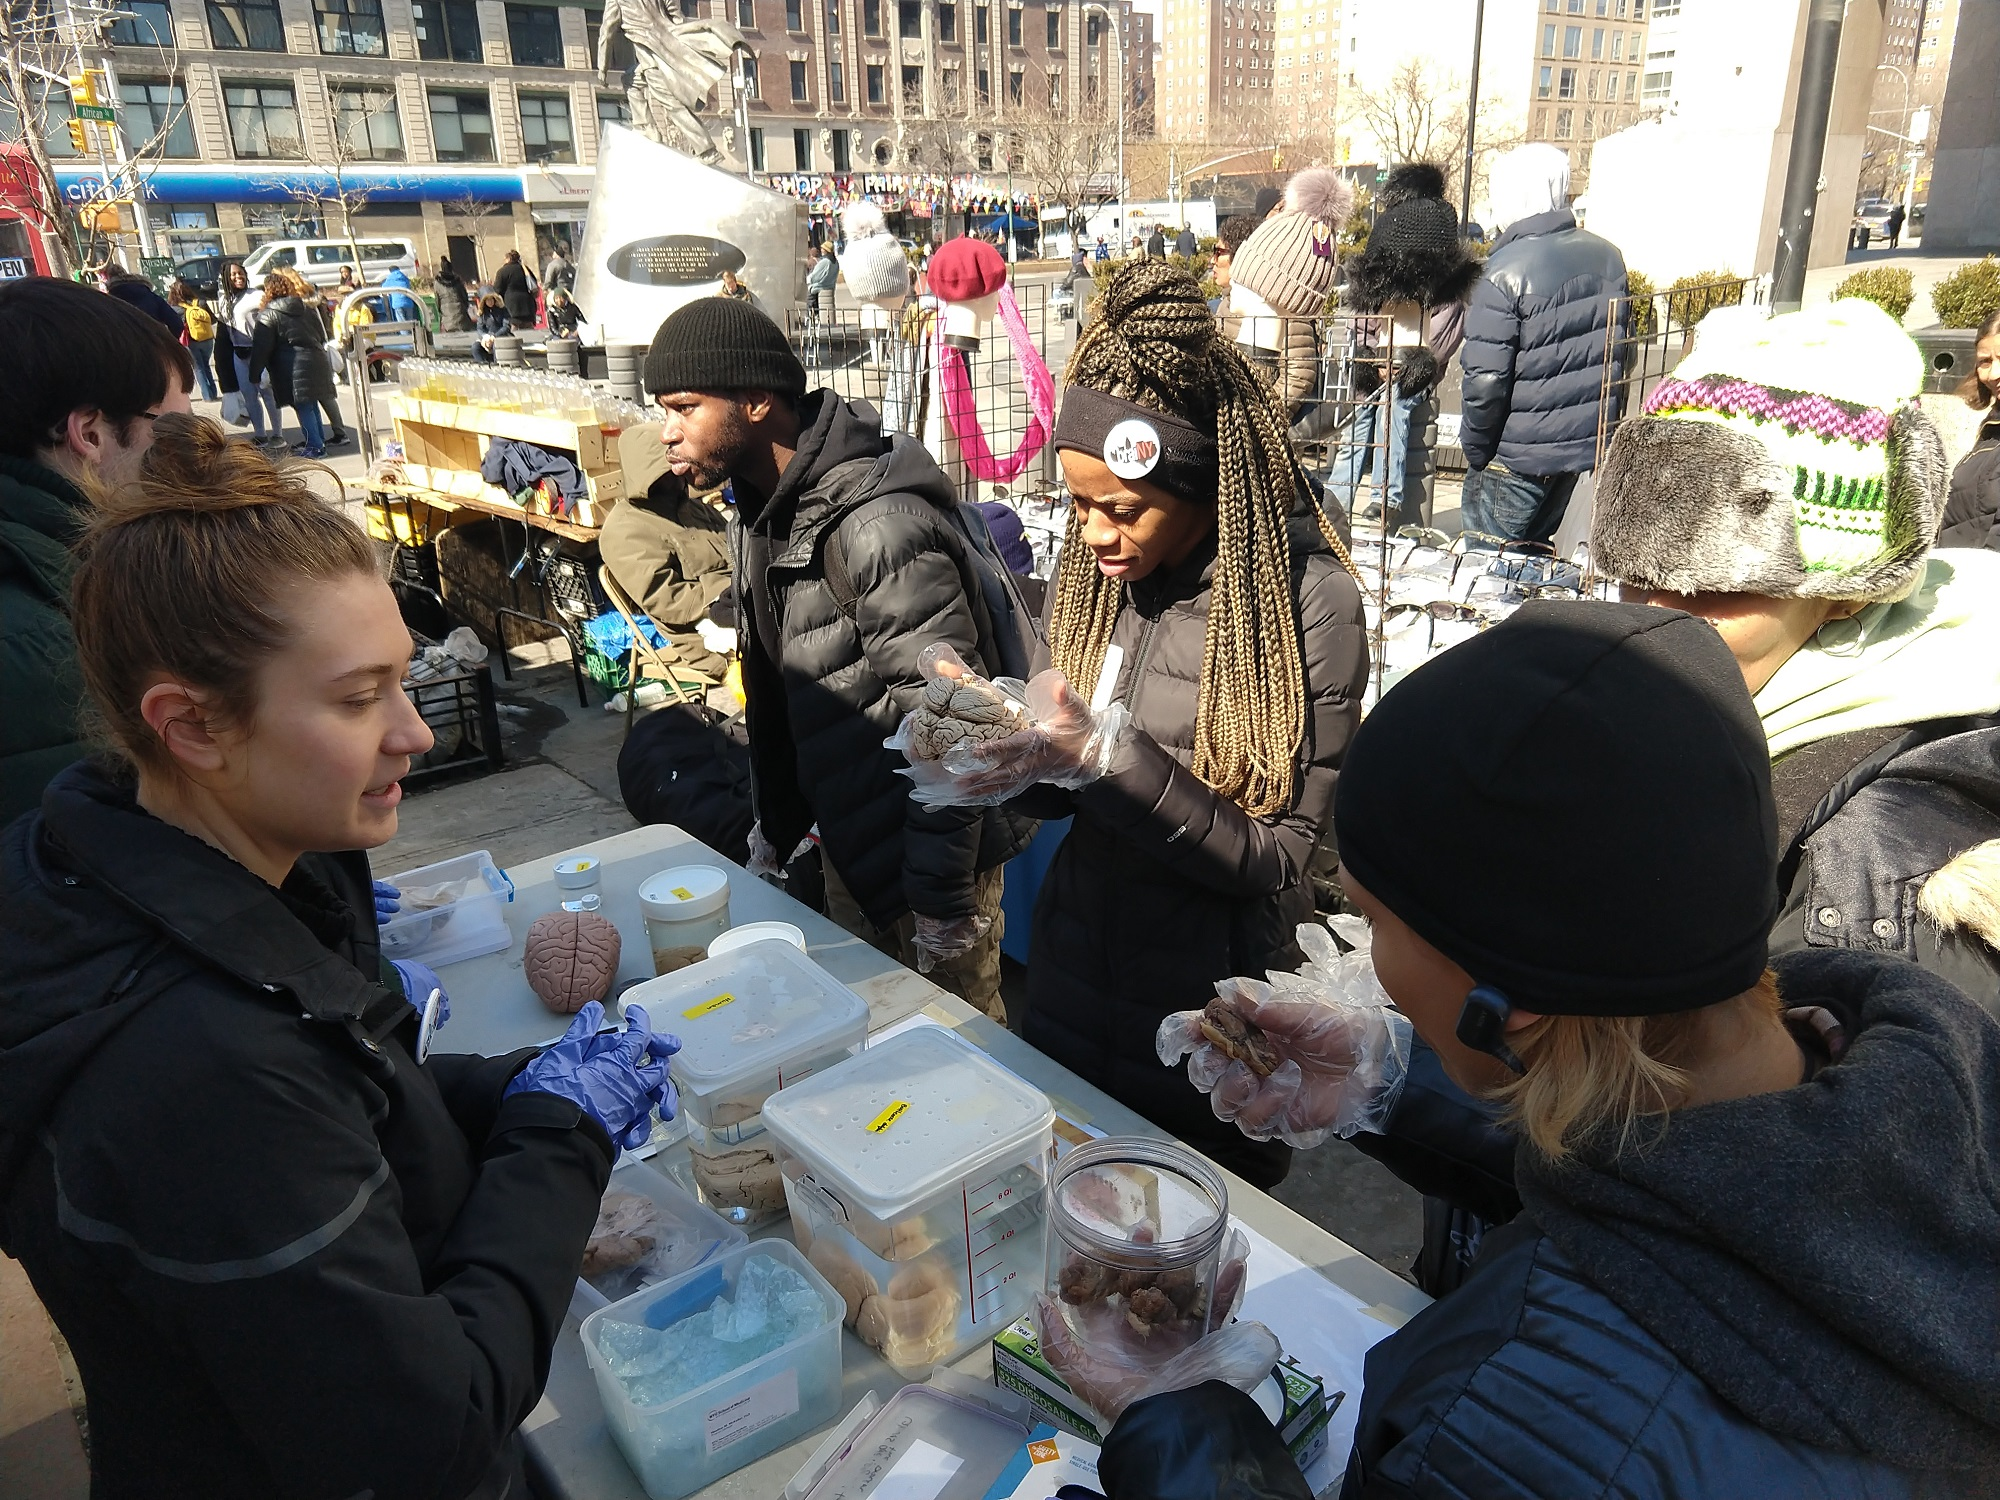 Science enthusiasts handling human and sheep brains